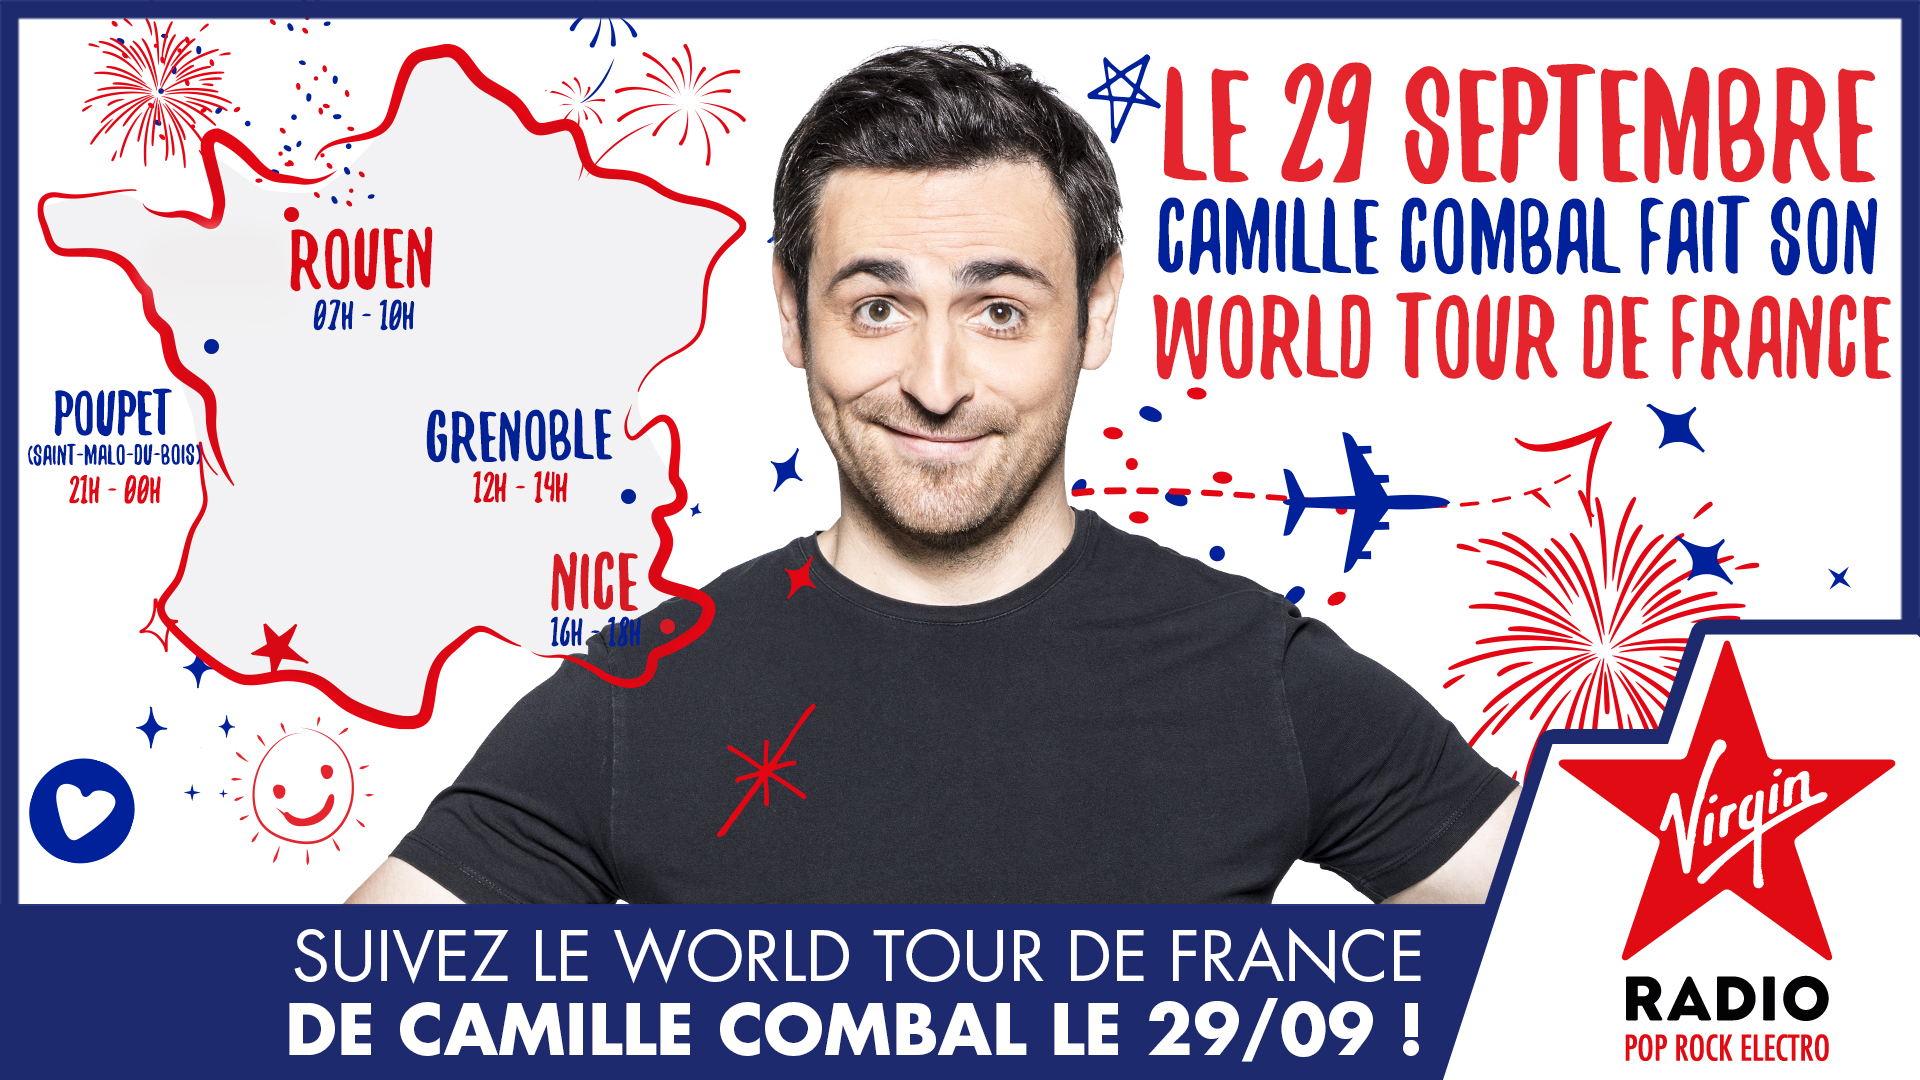 World Tour de France de Camille Combal